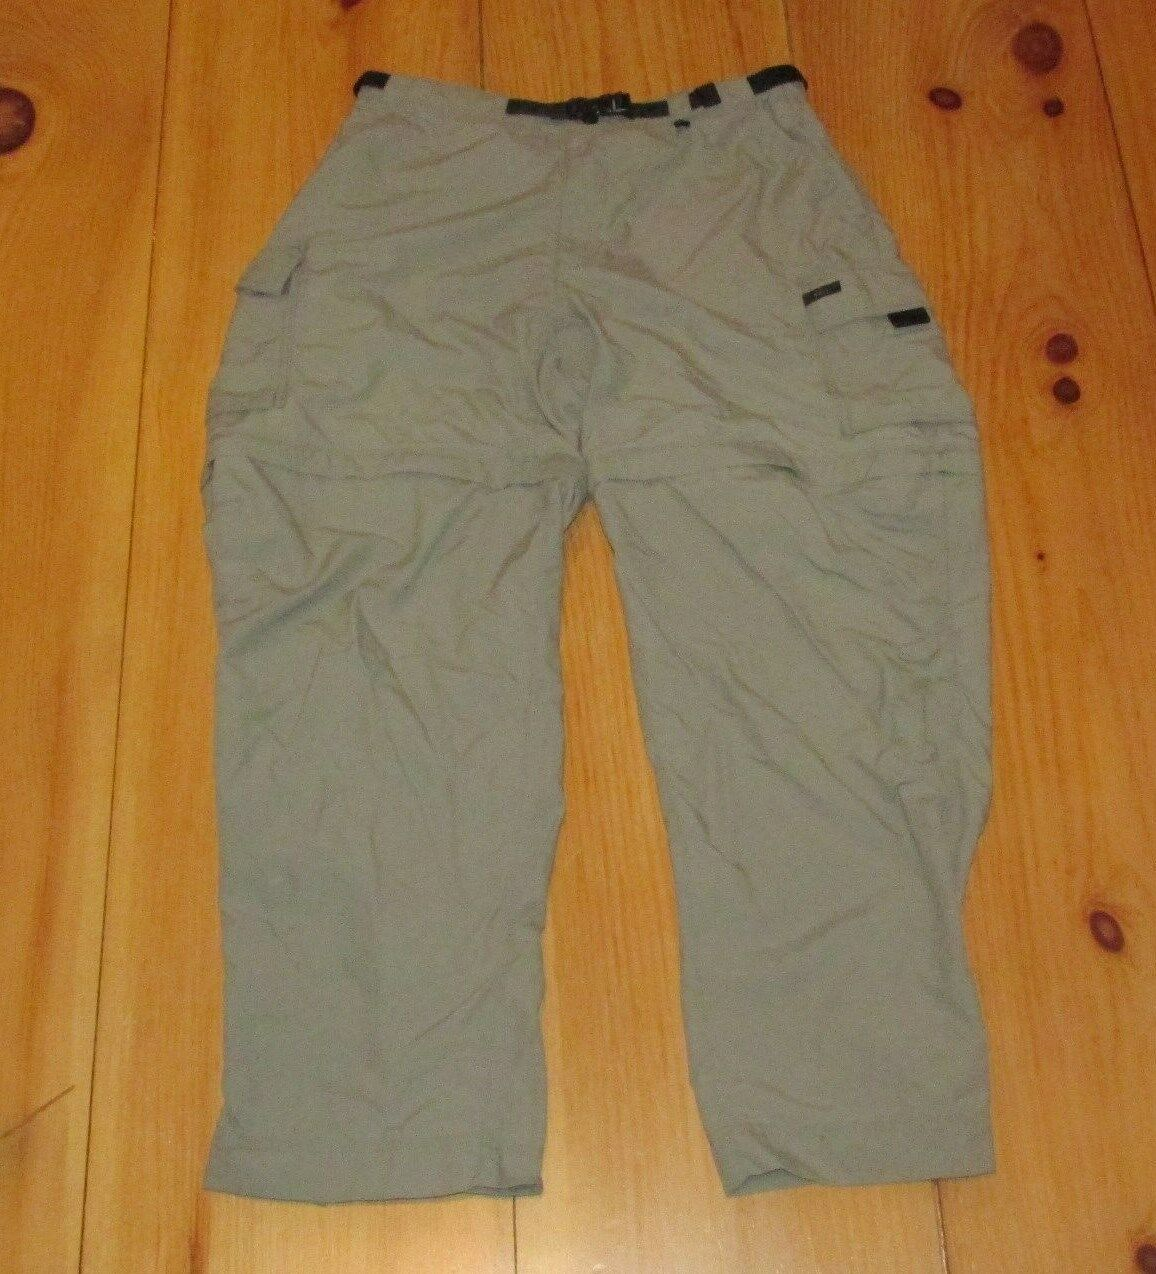 REI Congreenible Hiking Cargo Pants Womens Sz 14 P Beige Nylon UPF 50 + Outdoor